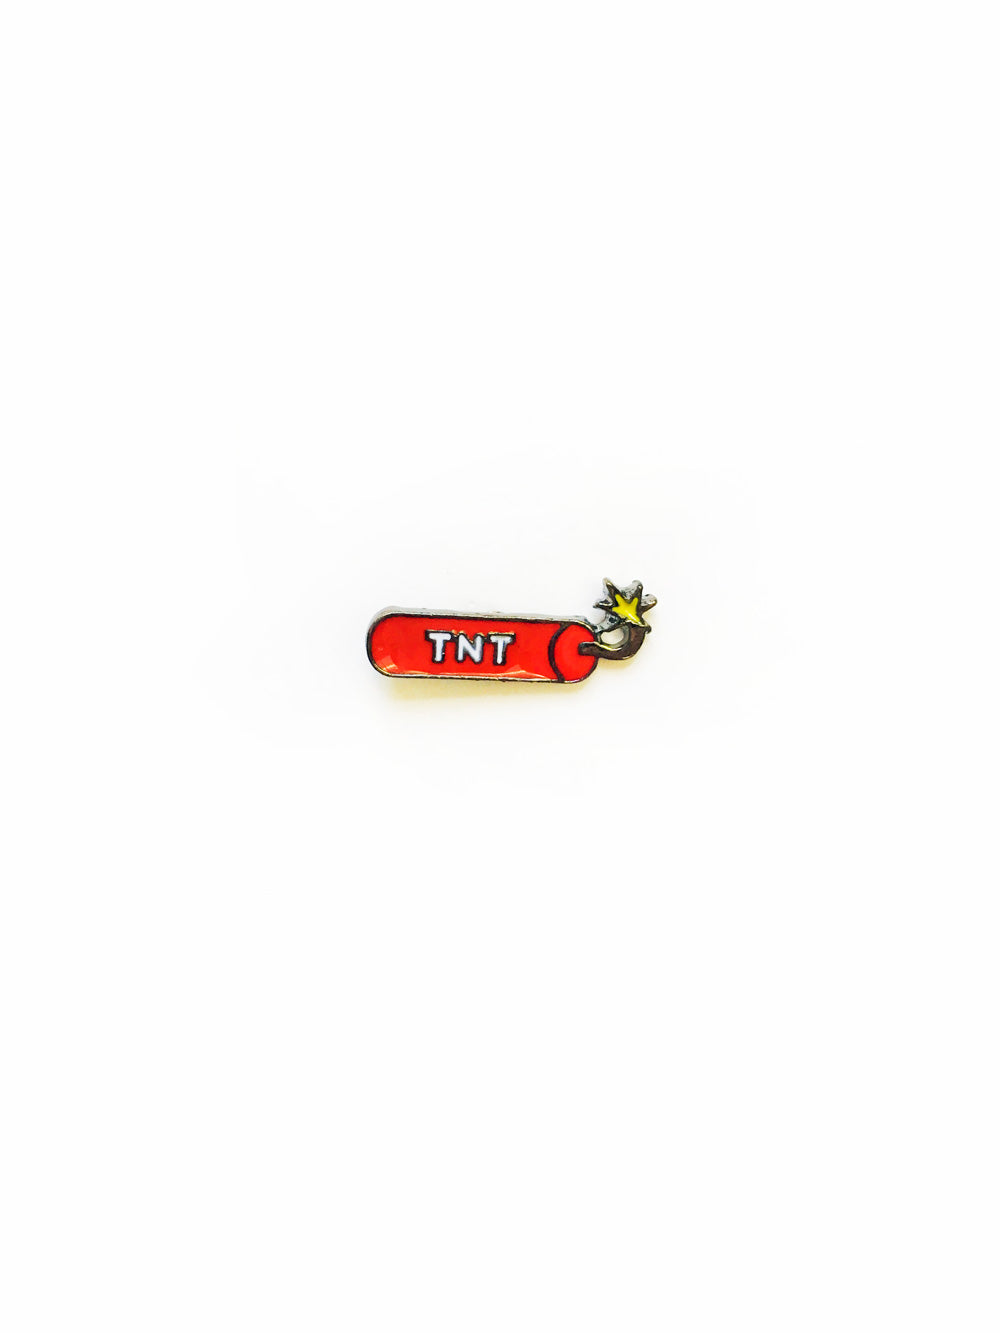 TNT Enamel Pin